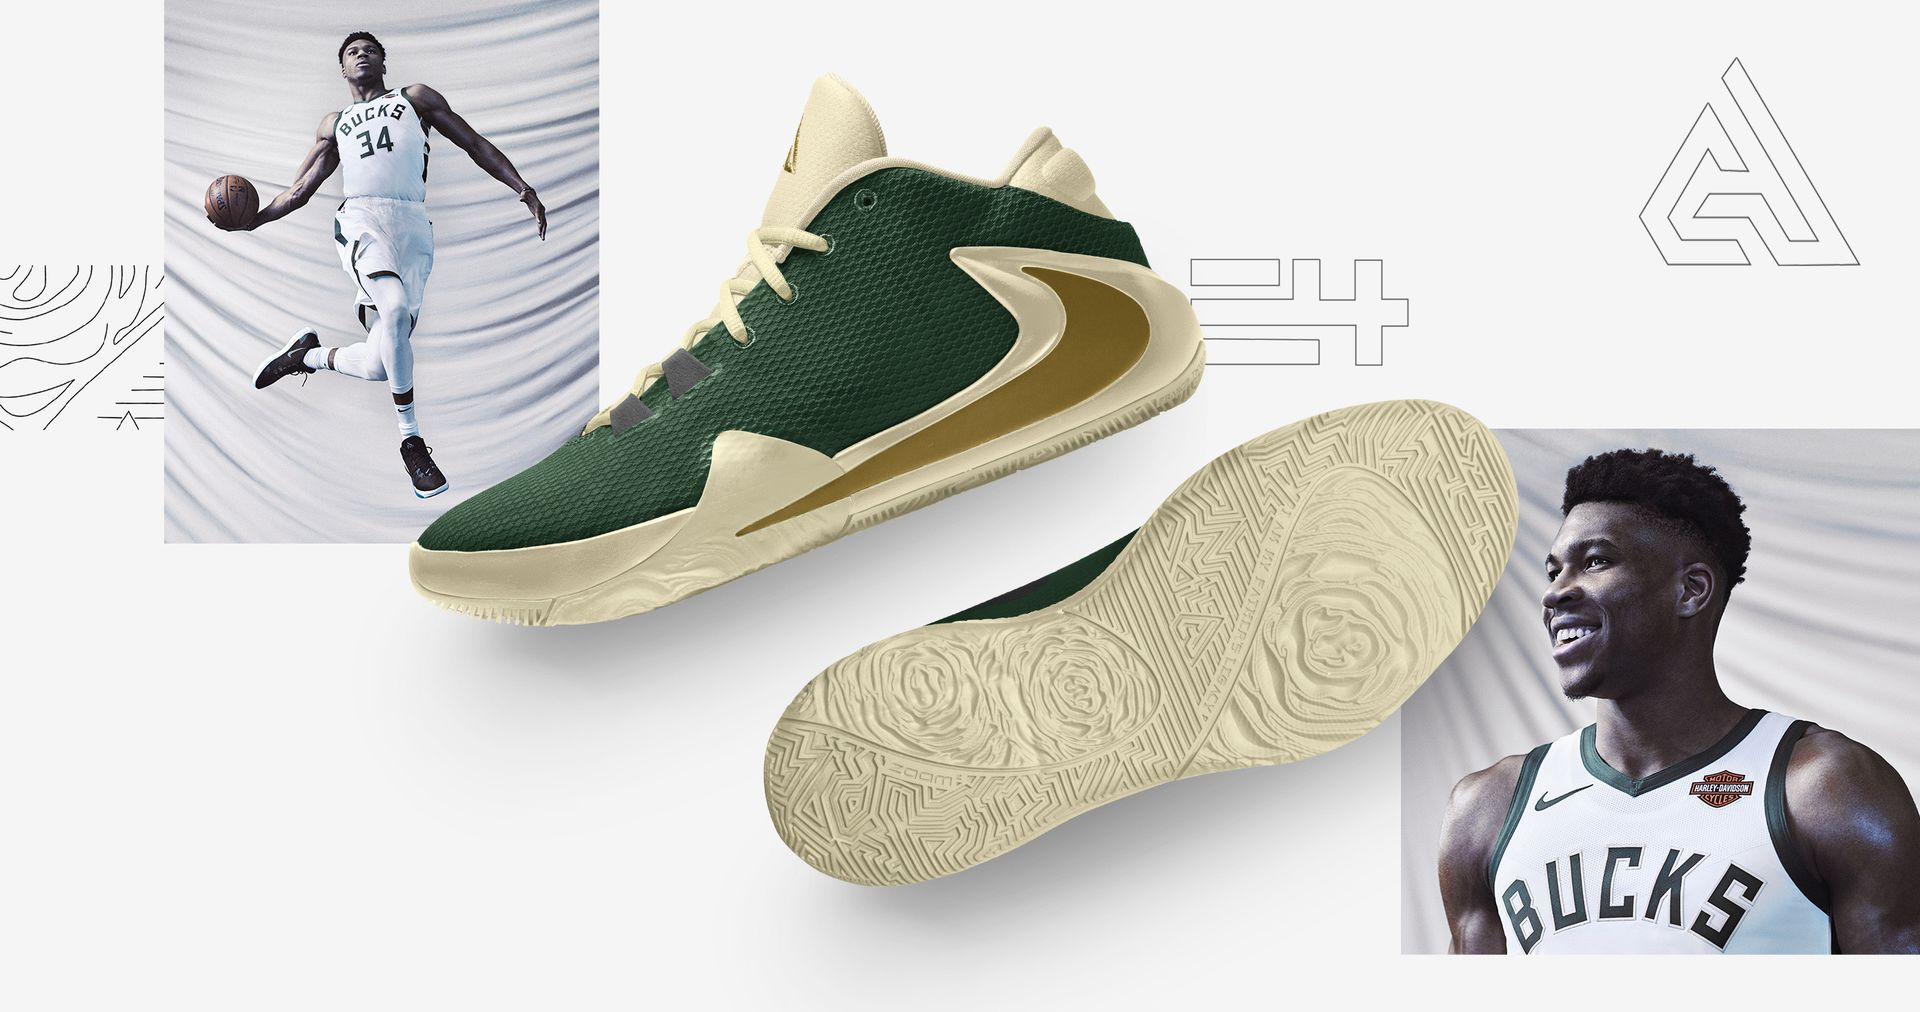 Tue Nike Personalizzabili Scarpe By Le YouIt QdhxsrCt